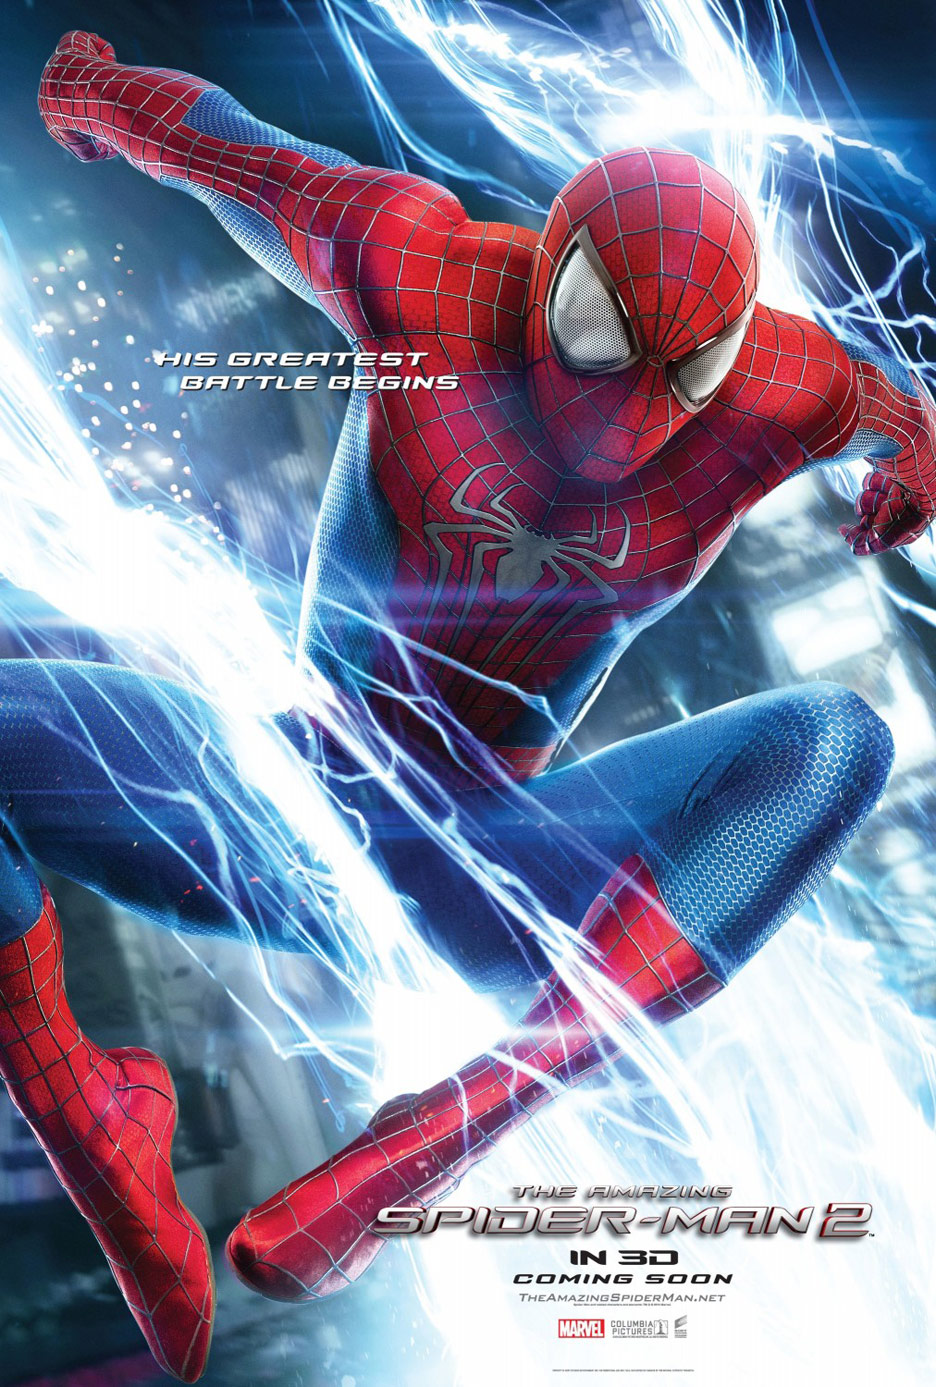 The Amazing Spider-Man 2 Poster #8